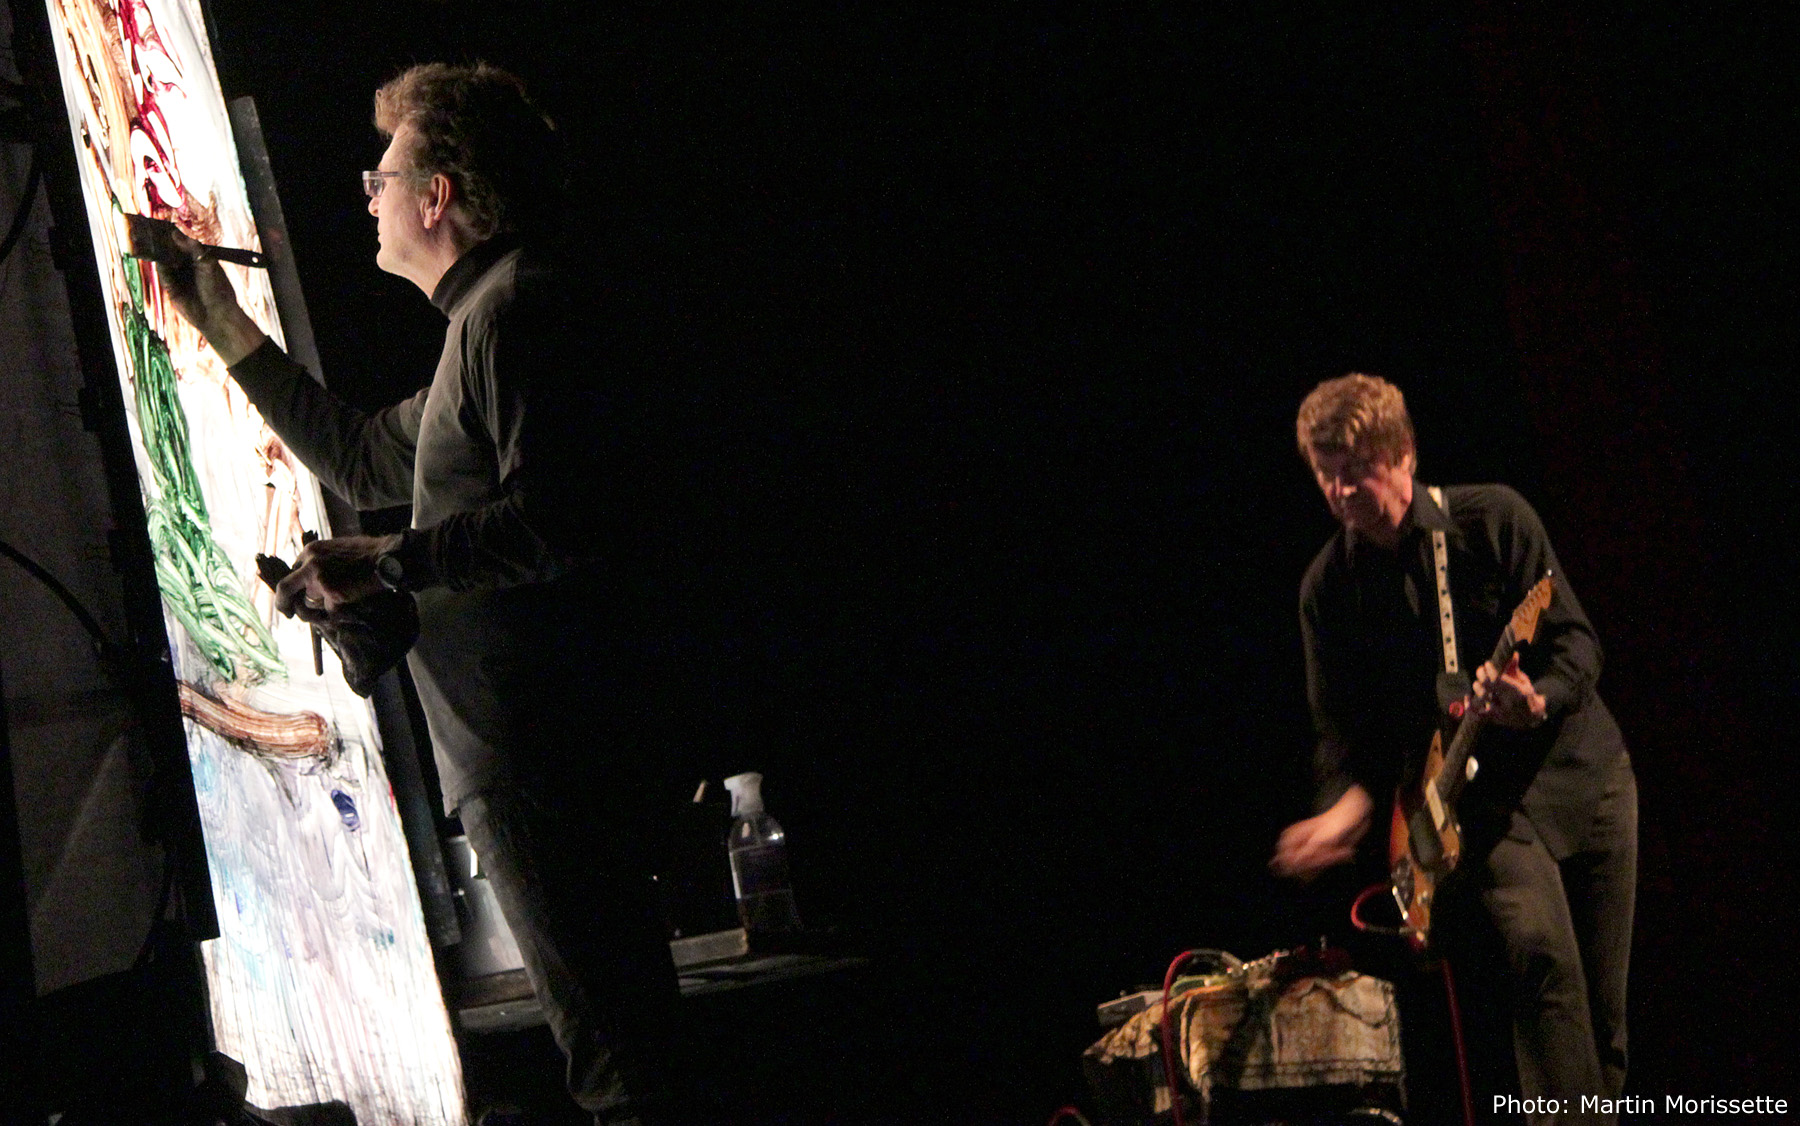 Norman Wisdom and Nels Cline at Fimav 2011